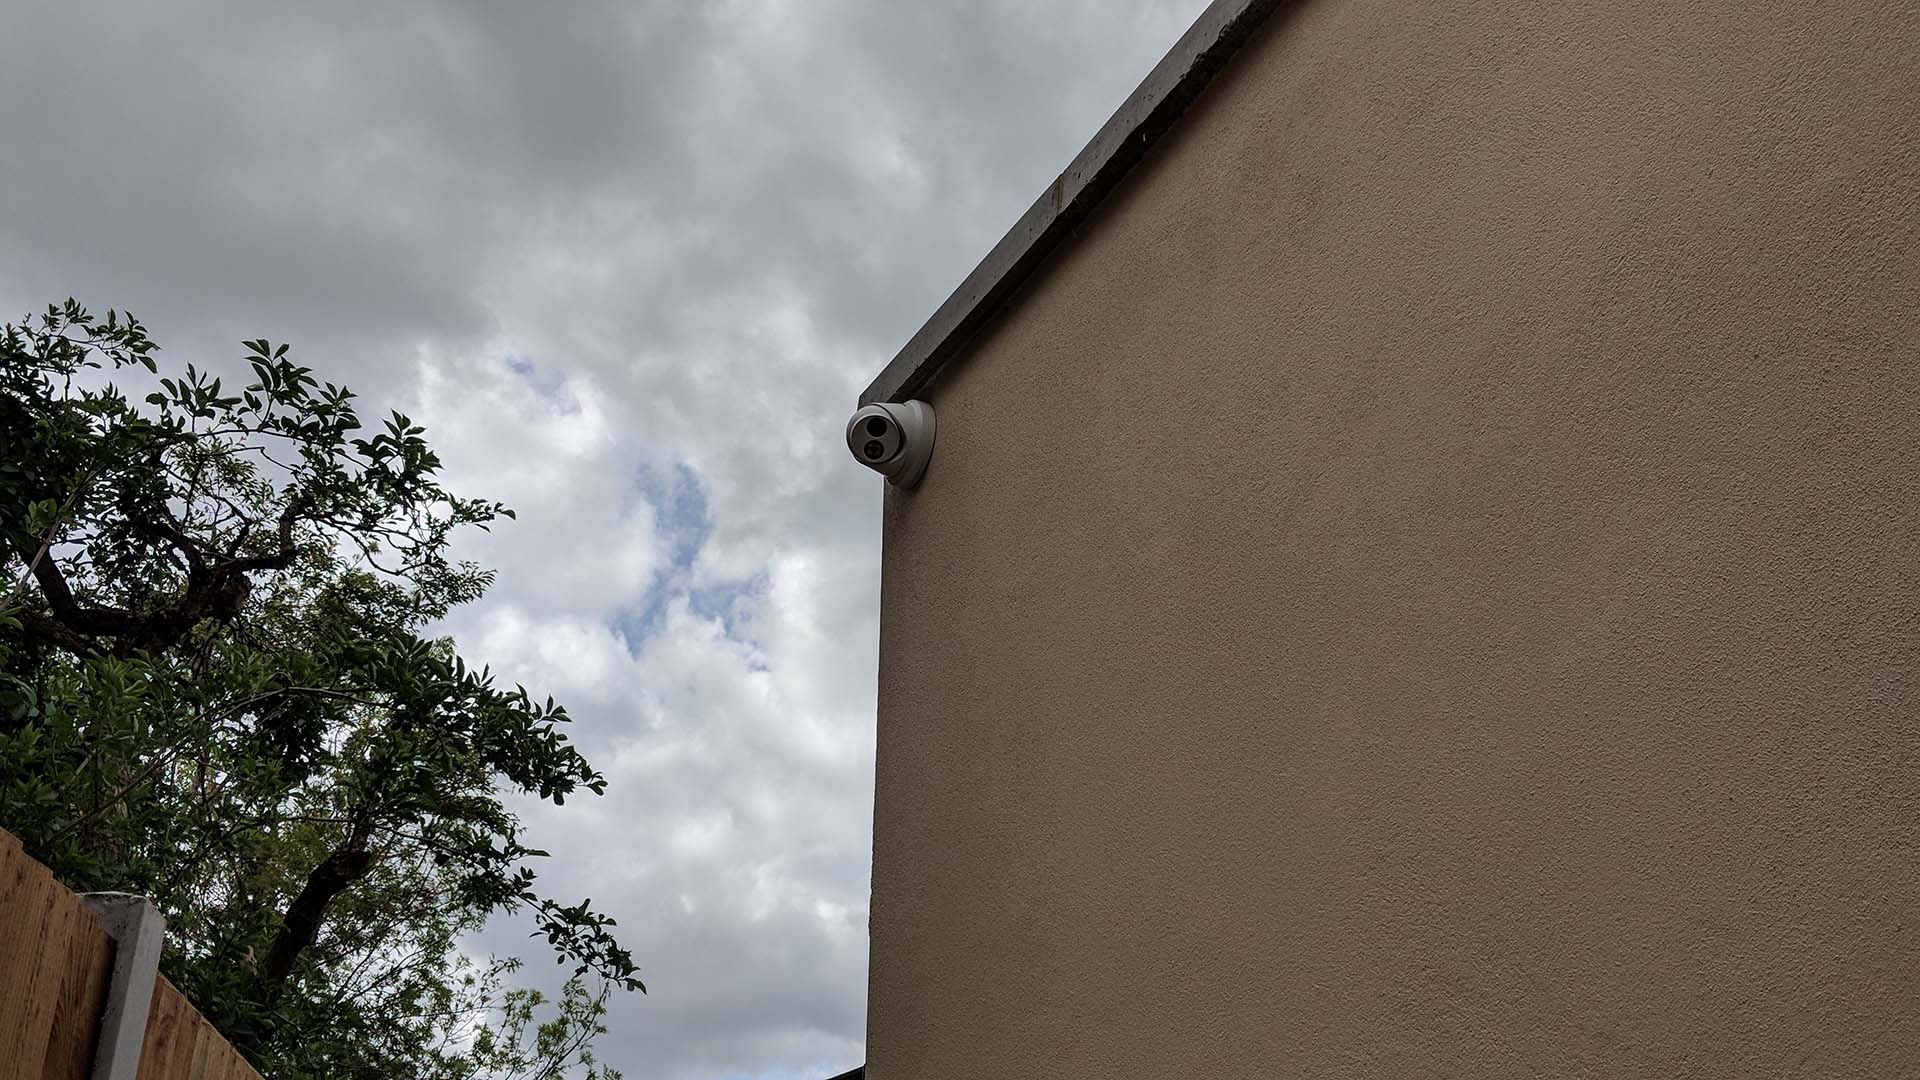 4K IP CCTV Installation in Epping